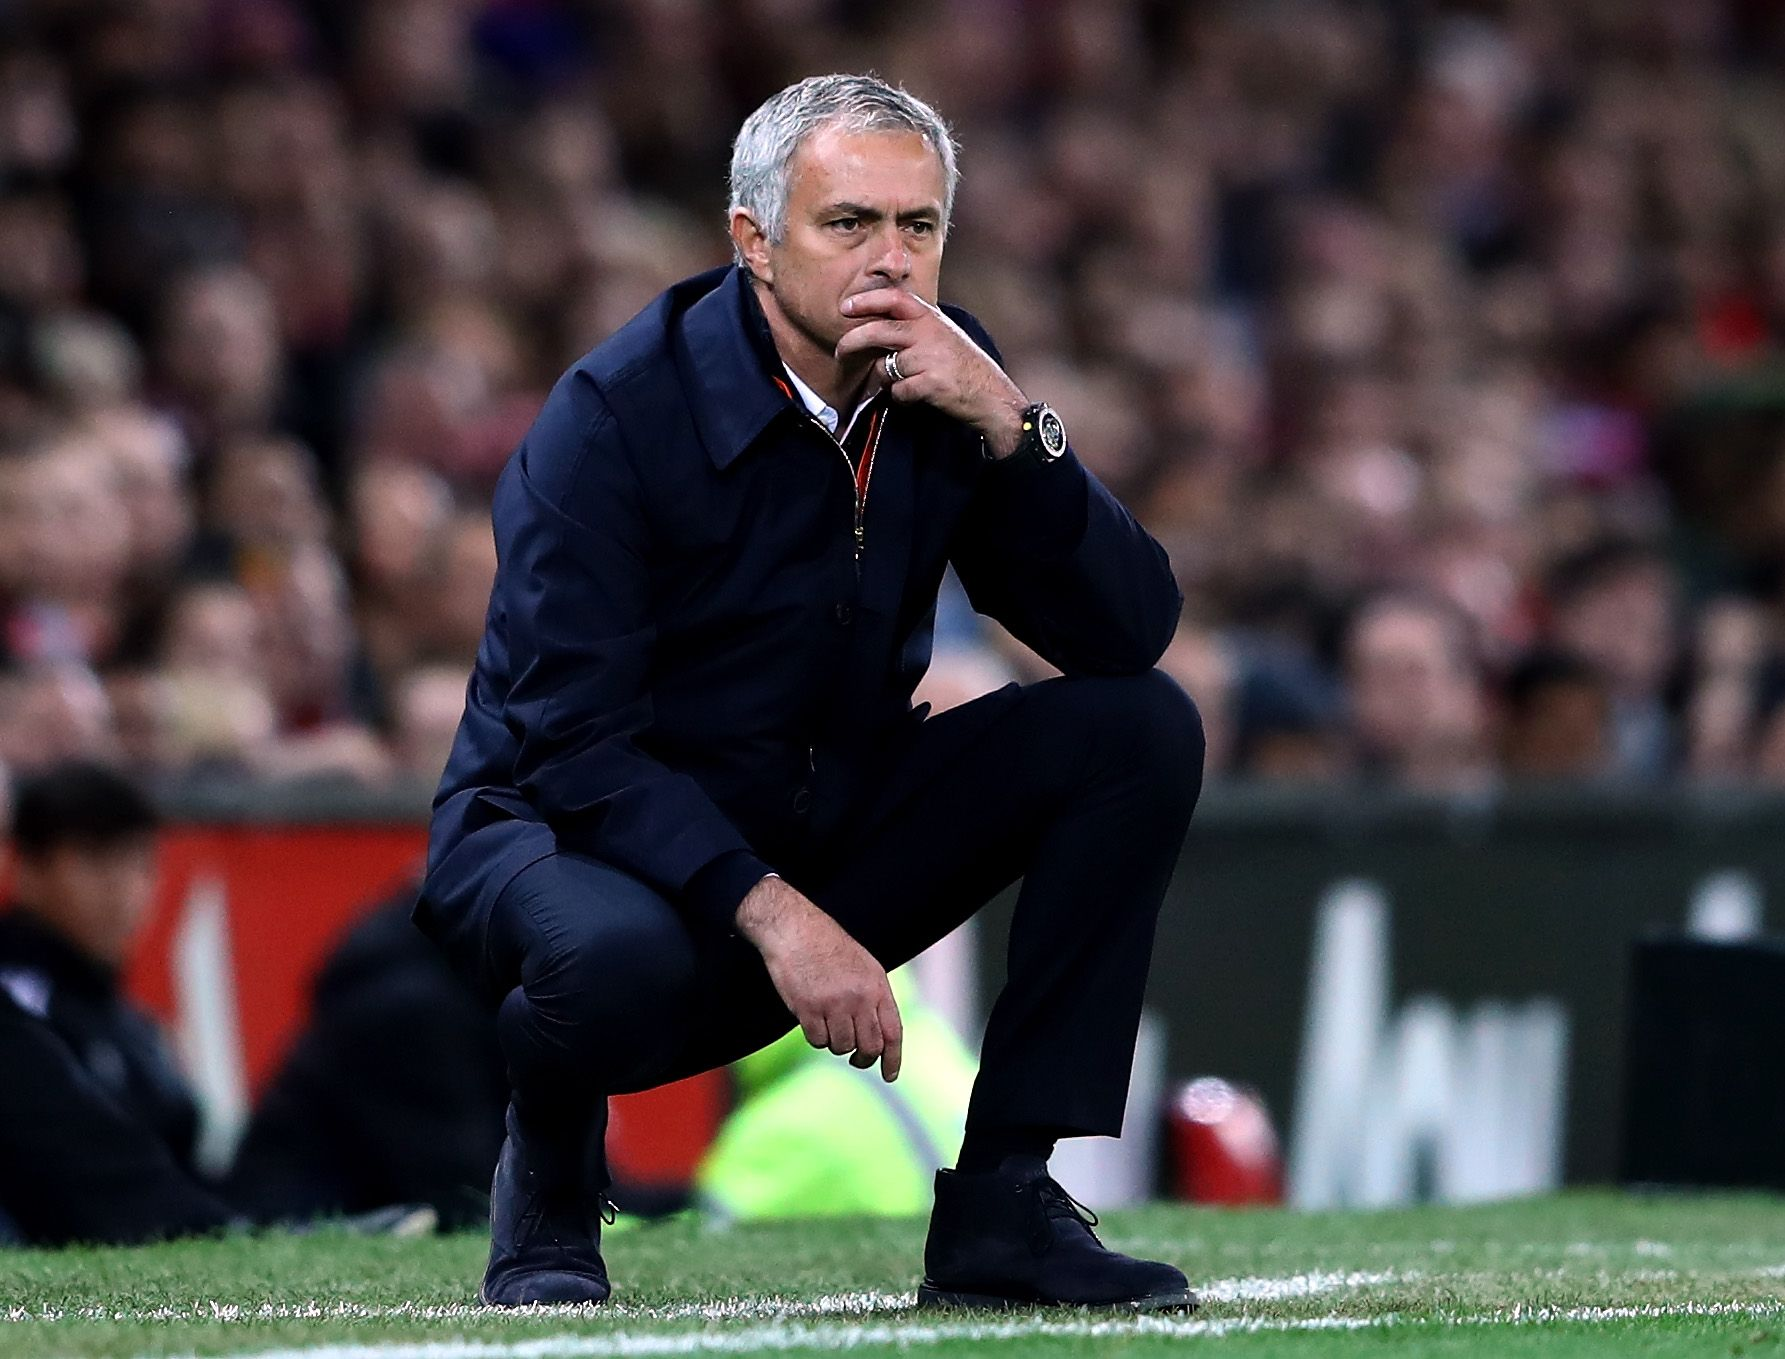 Jose Mourinho Manchester United Manager Charged By FA Over Referee Comments